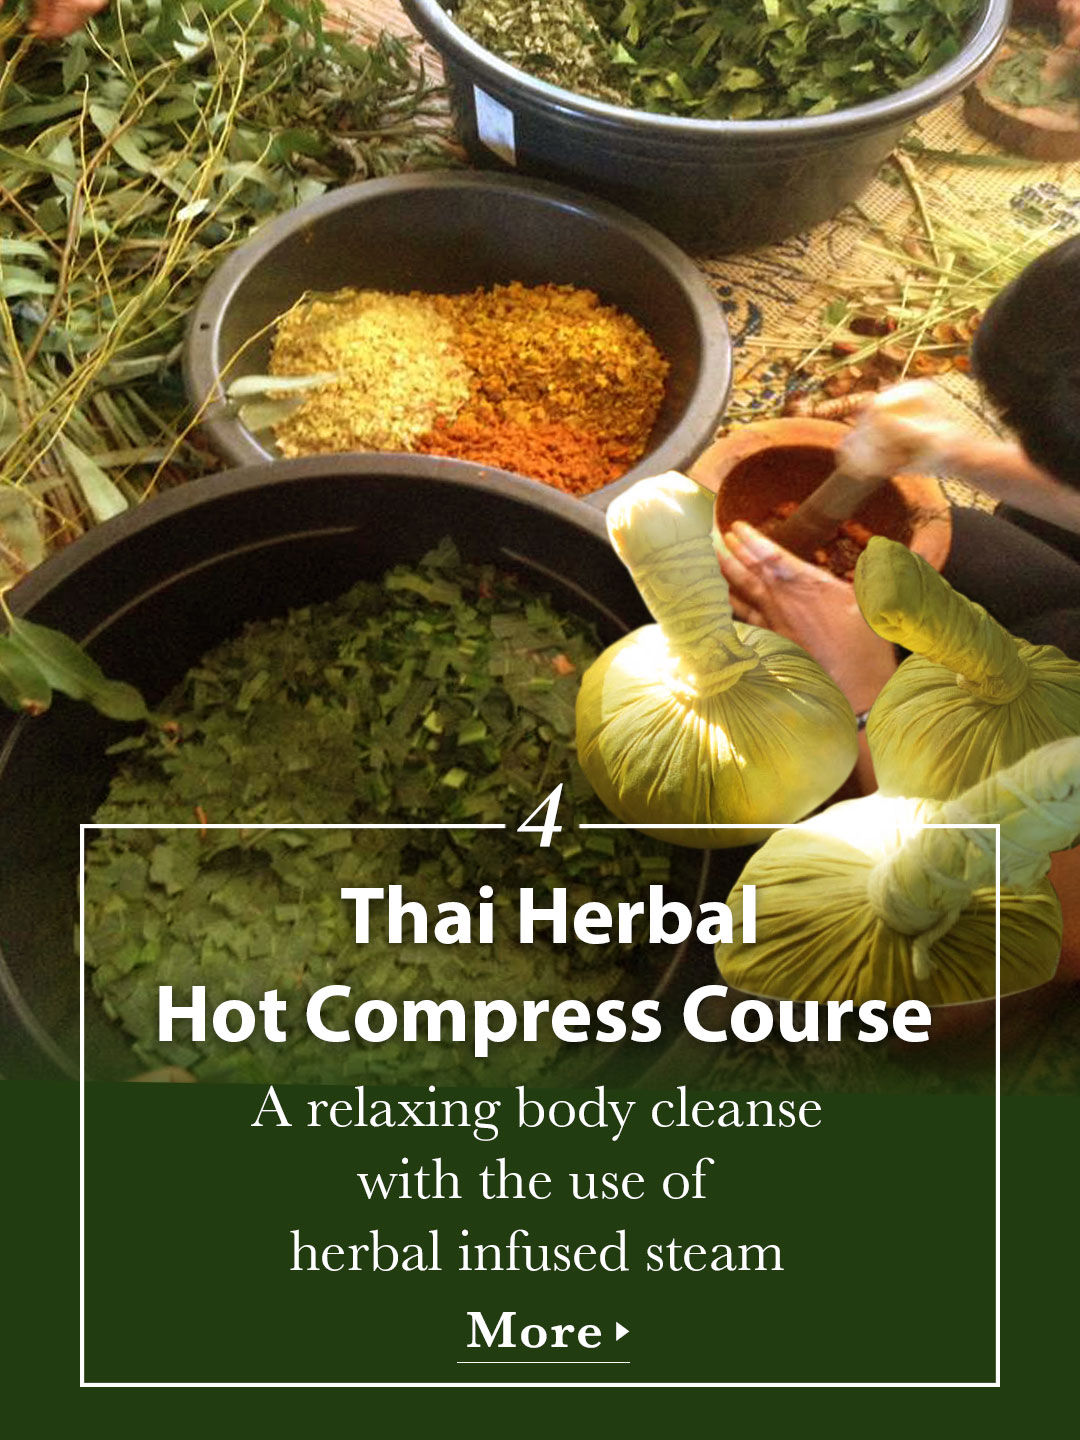 Thai Herbal Hot Compress Course